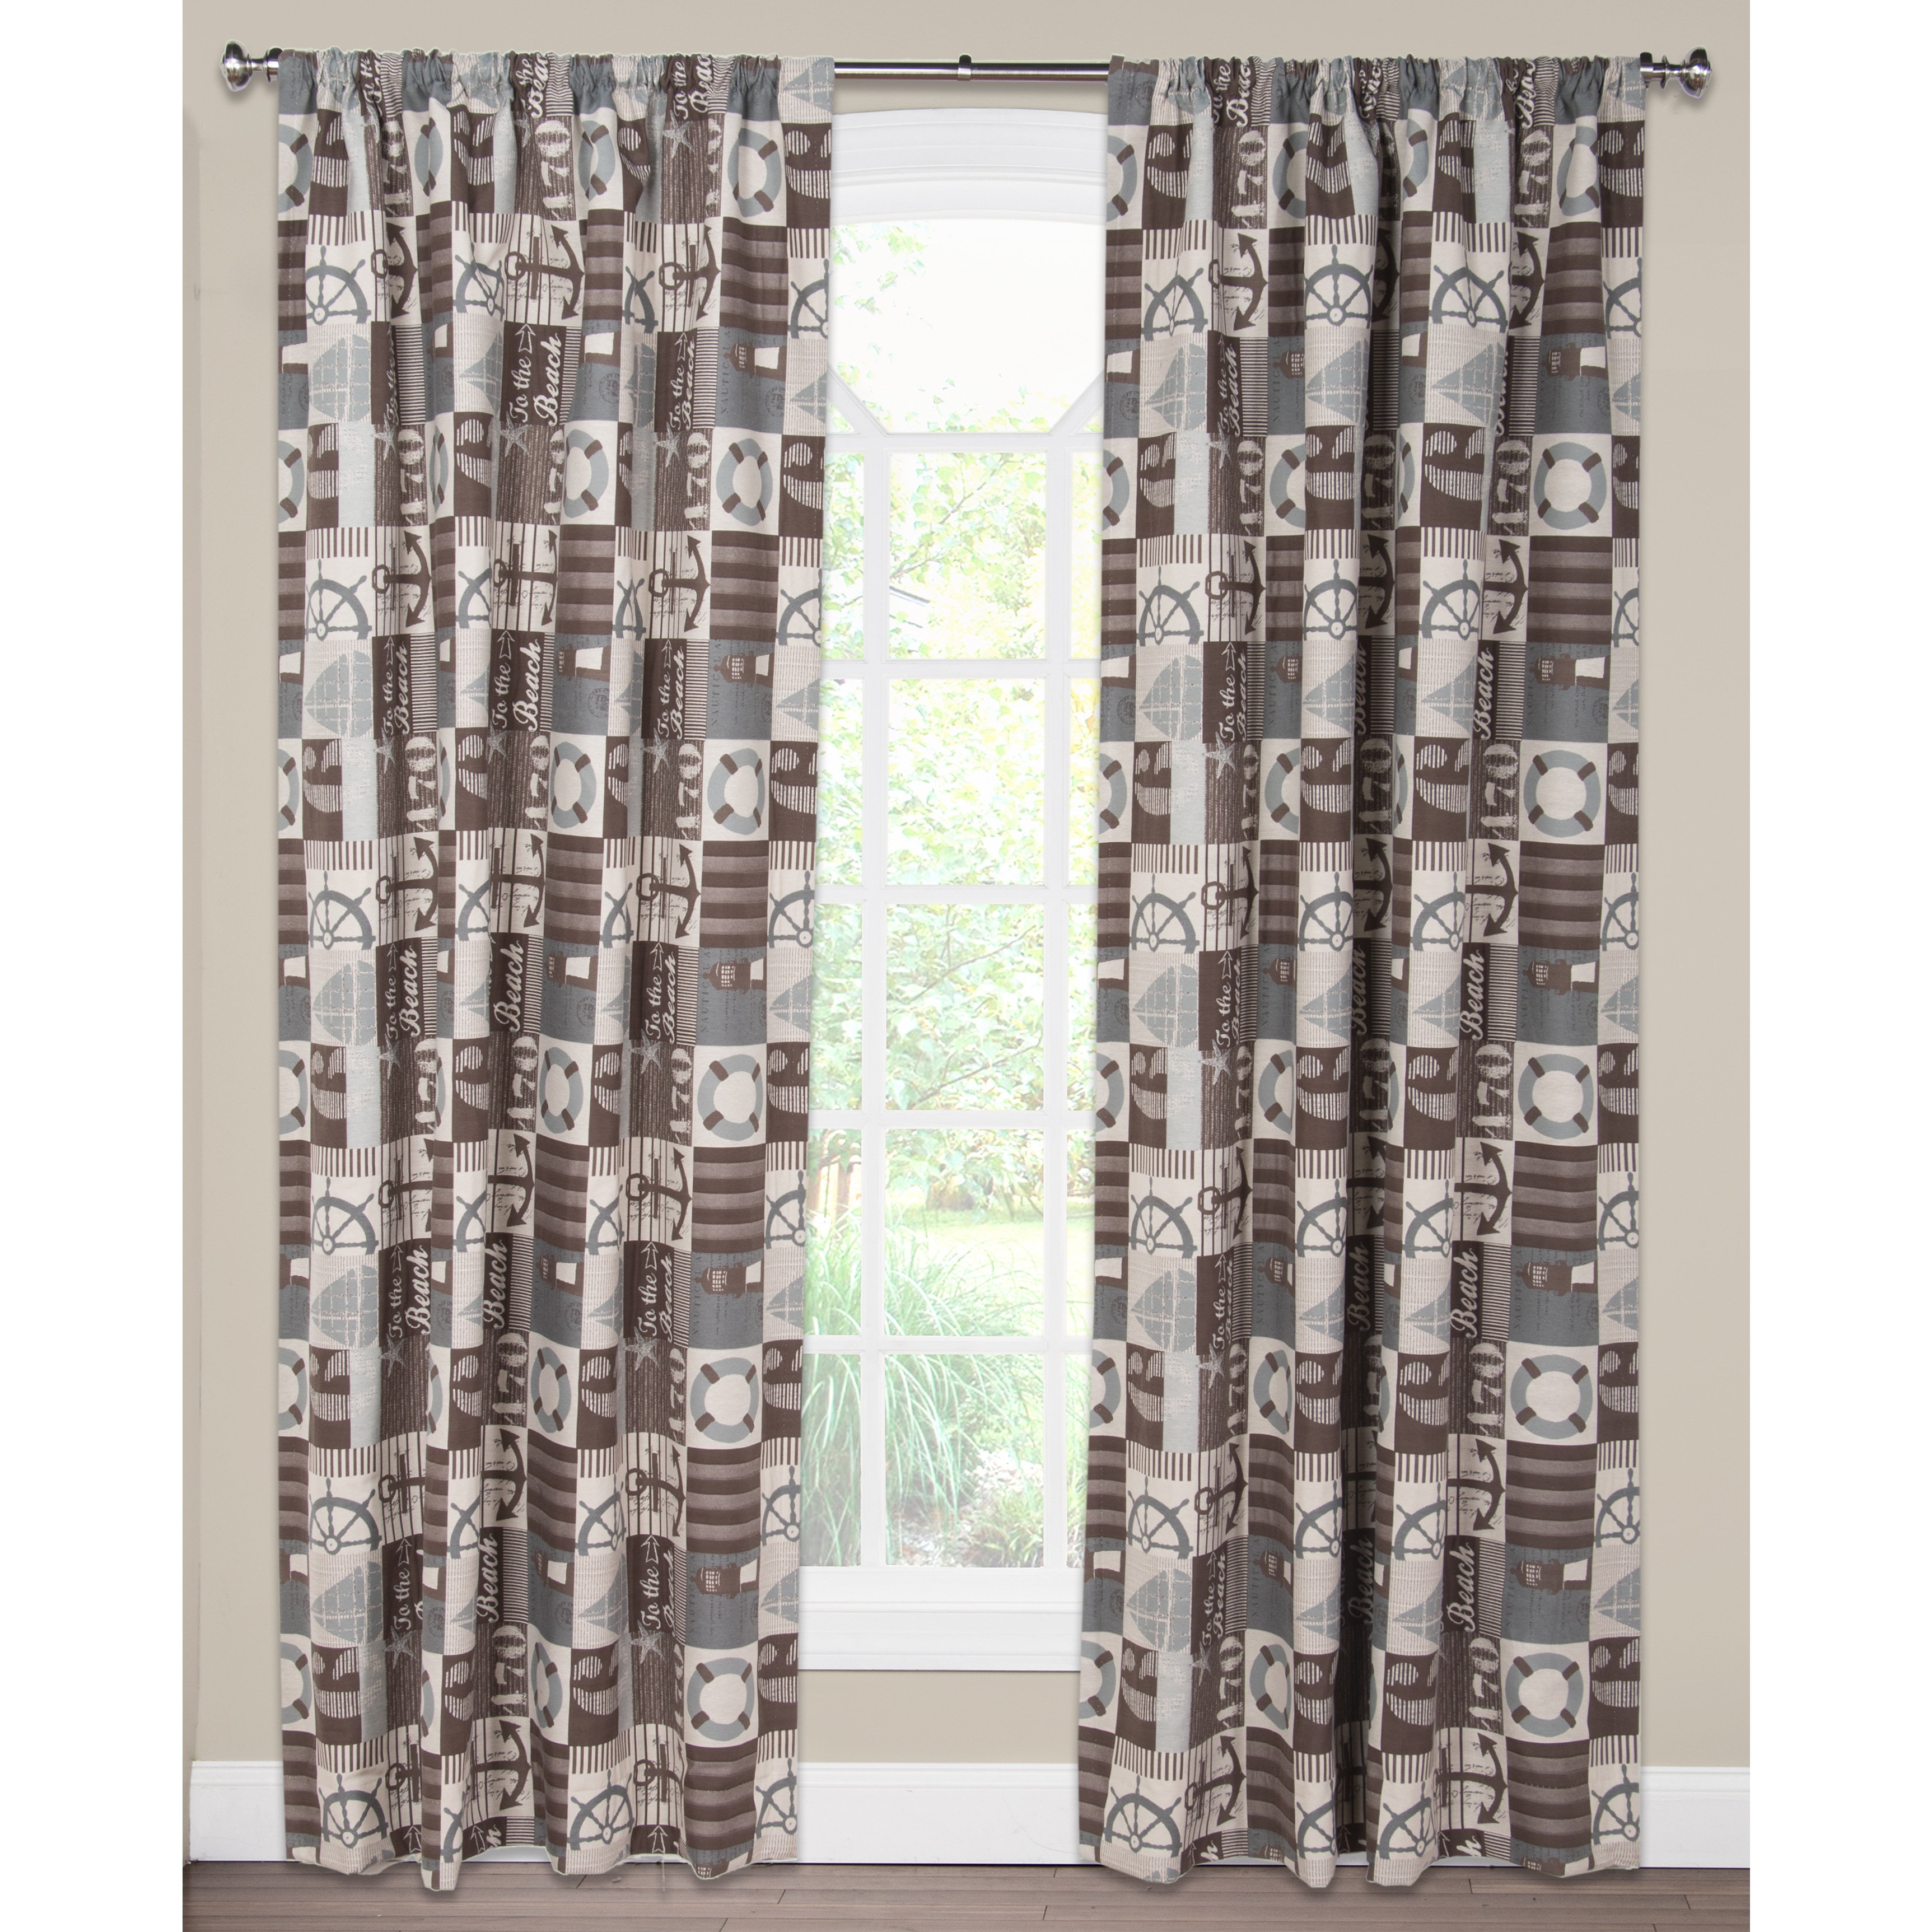 To The Beach Curtain Panel Free Shipping Today 12204758